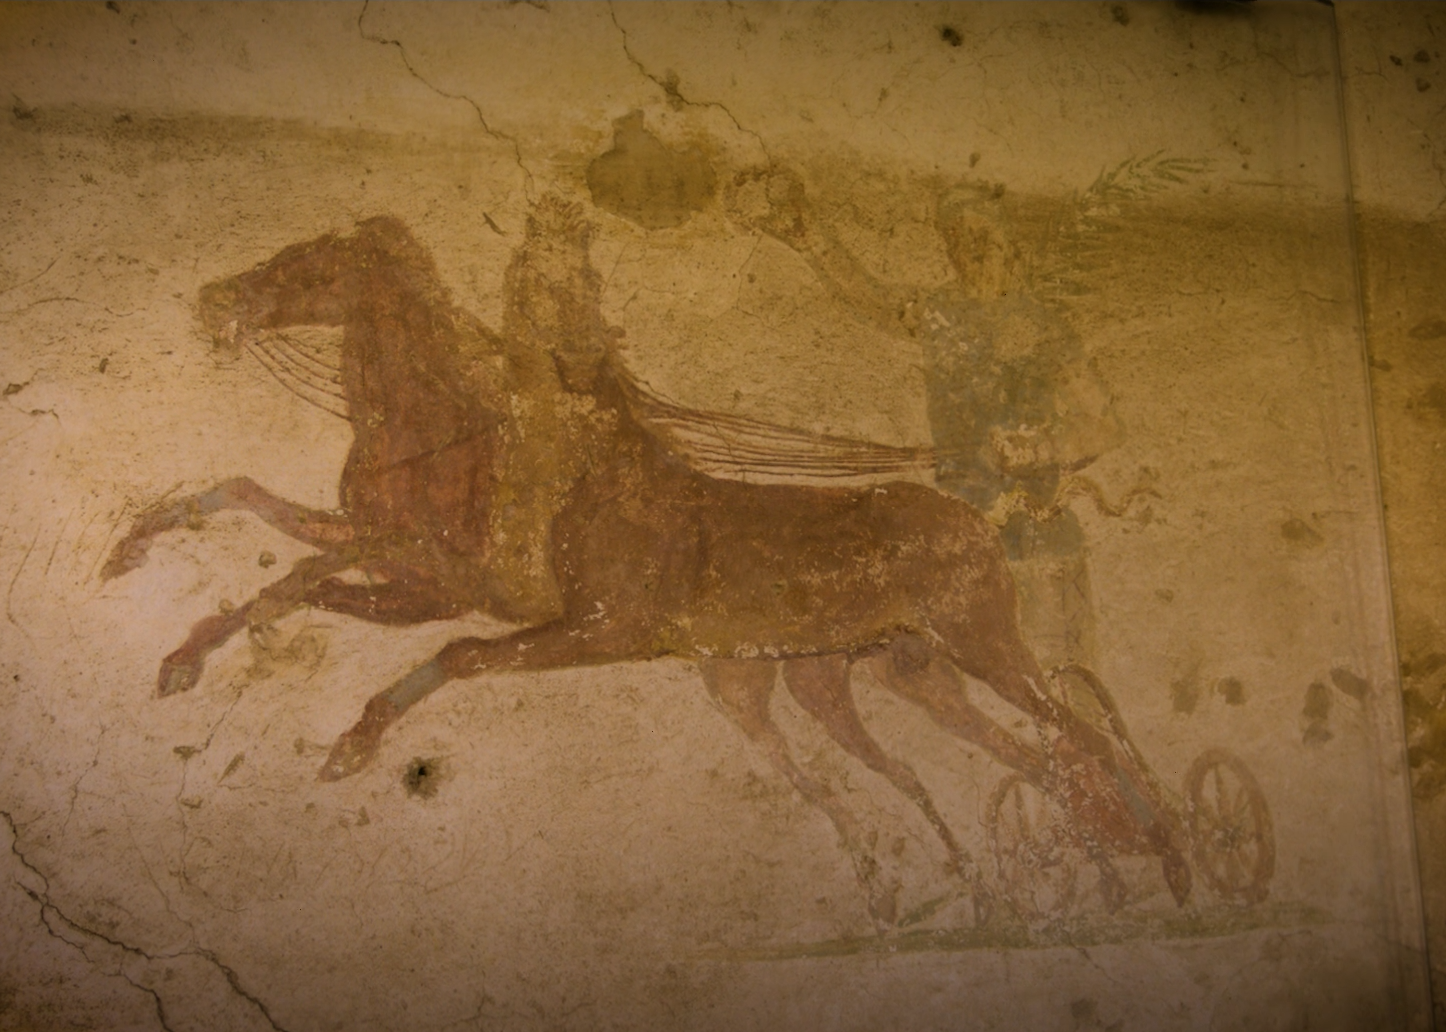 A man on a chariot drawn by two horses going right to left. One horse is turning its head